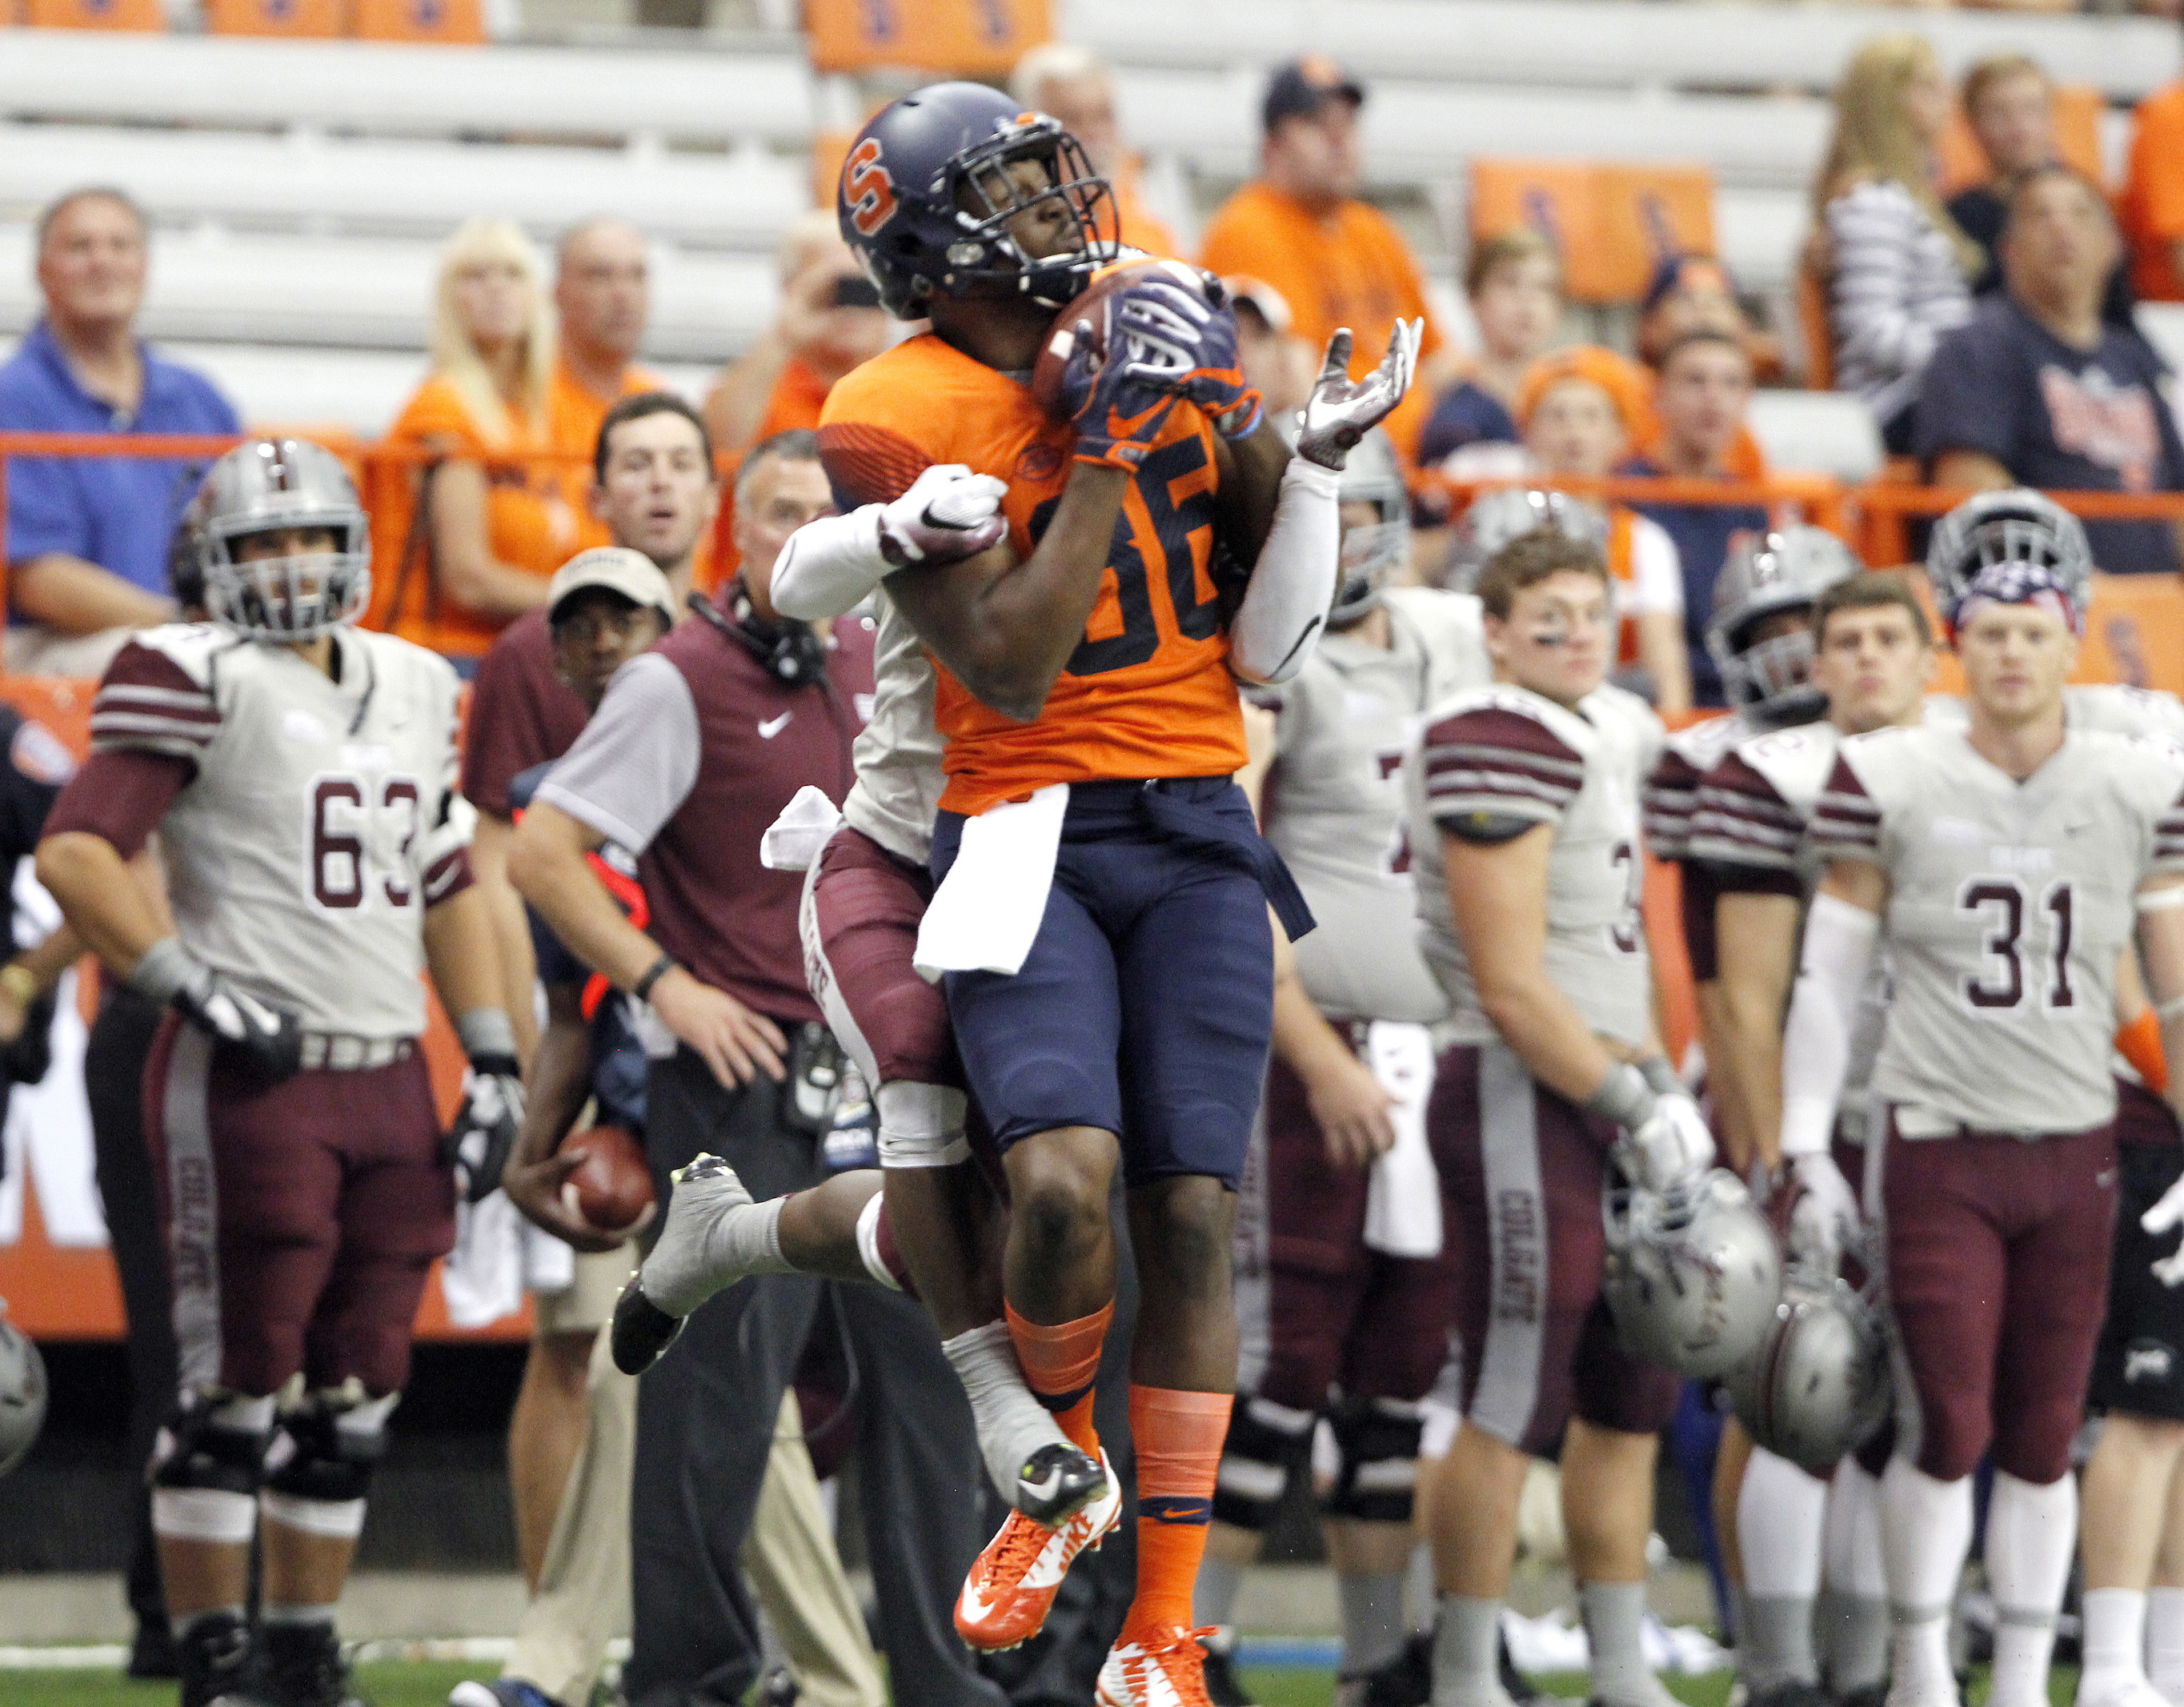 Syracuse's Adly Enoicy makes the catch while guarded by Colgate's Abu Daramy in the second half of an NCAA college football game in Syracuse, N.Y., Friday, Sept. 2, 2016. (AP Photo/Nick Lisi)